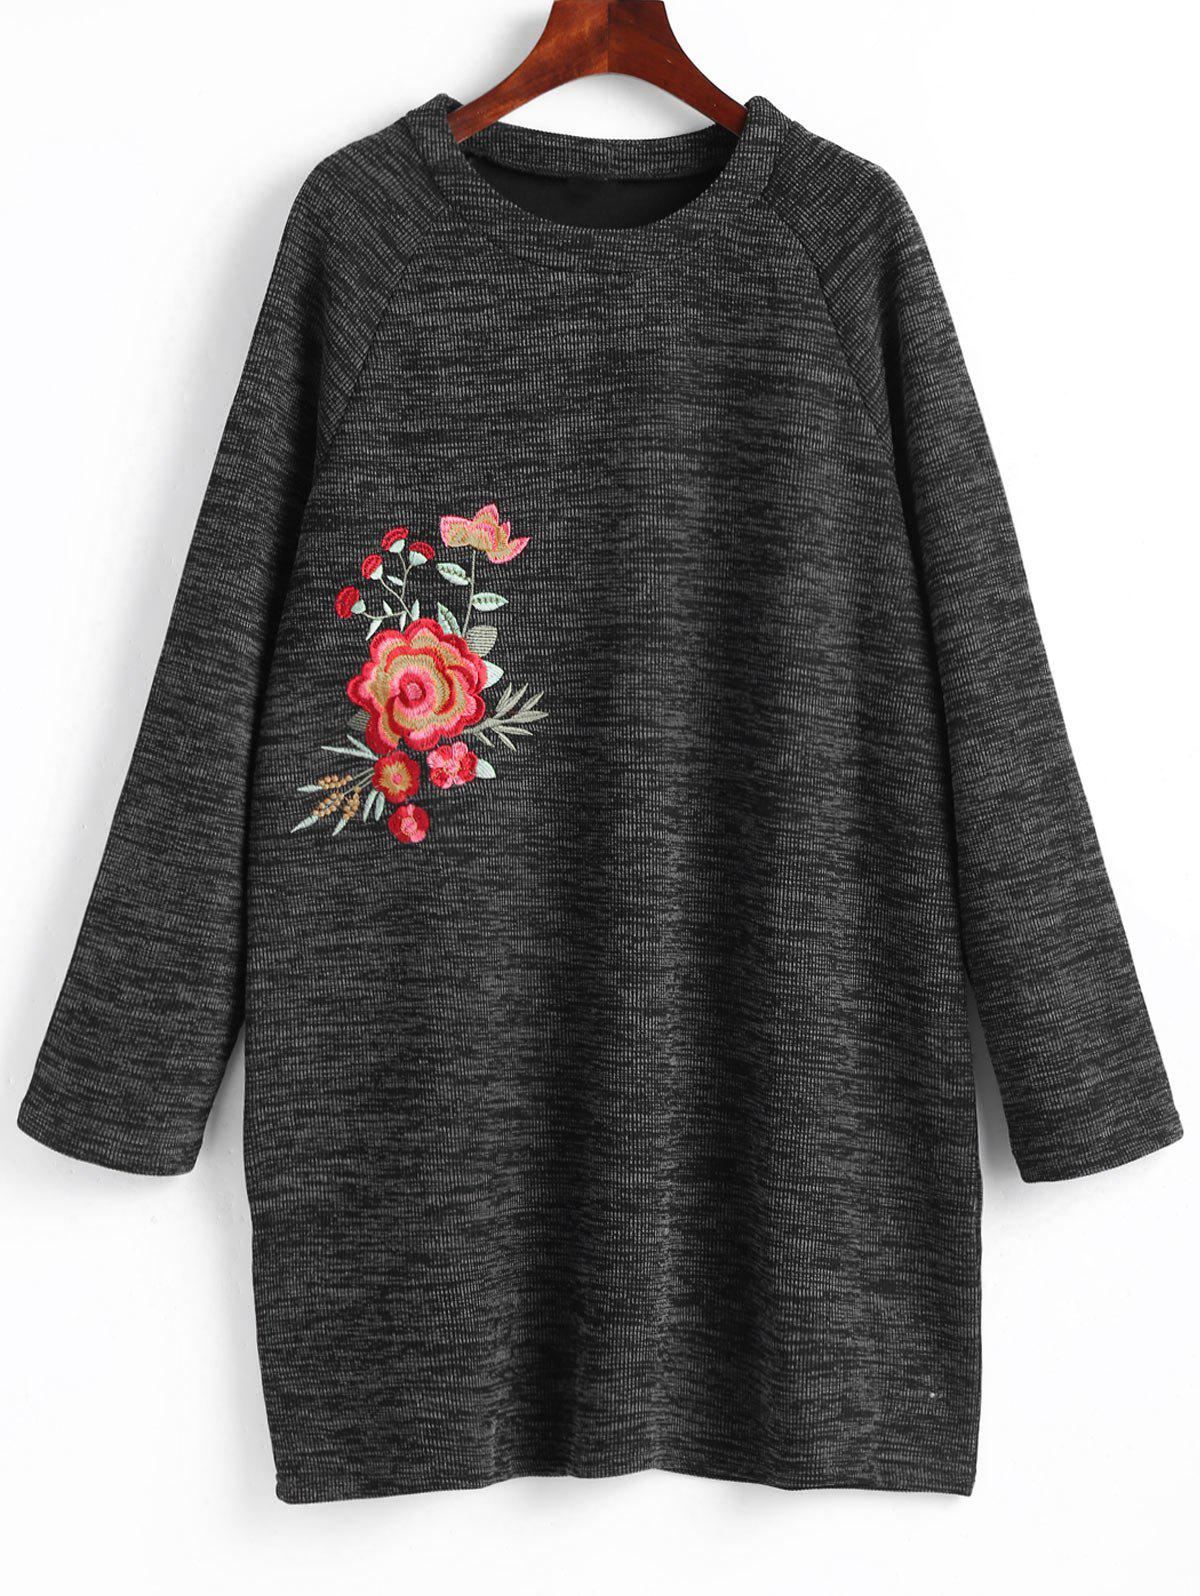 Plus Size Floral Embroidered Mini Sweatshirt Dress - DEEP GRAY 5XL